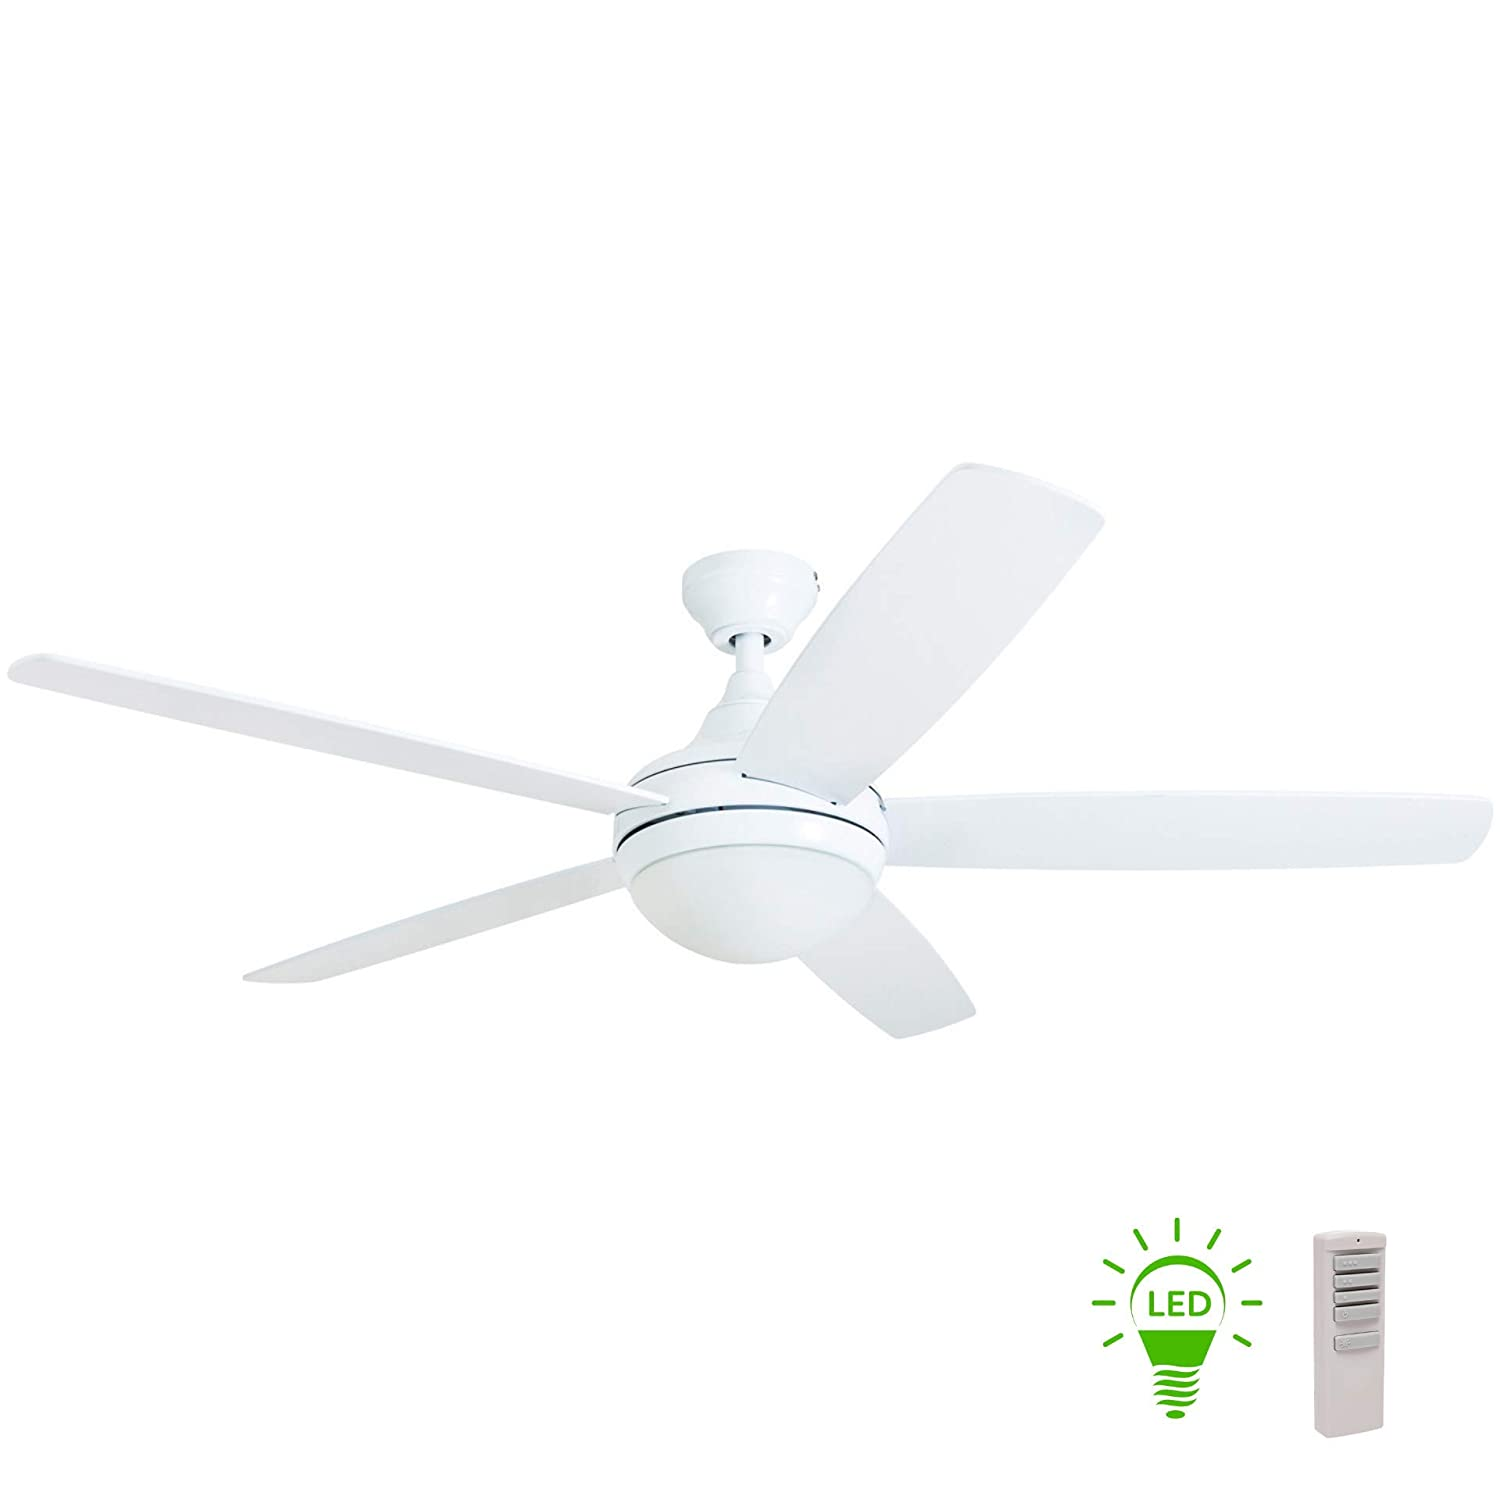 "Prominence Home 80094-01 Ashby Ceiling Fan with Remote Control and Dimmable Integrated LED Light Frosted Fixture, 52"" Contemporary Indoor, 5 Blades White/Grey Oak, Farmhouse White"